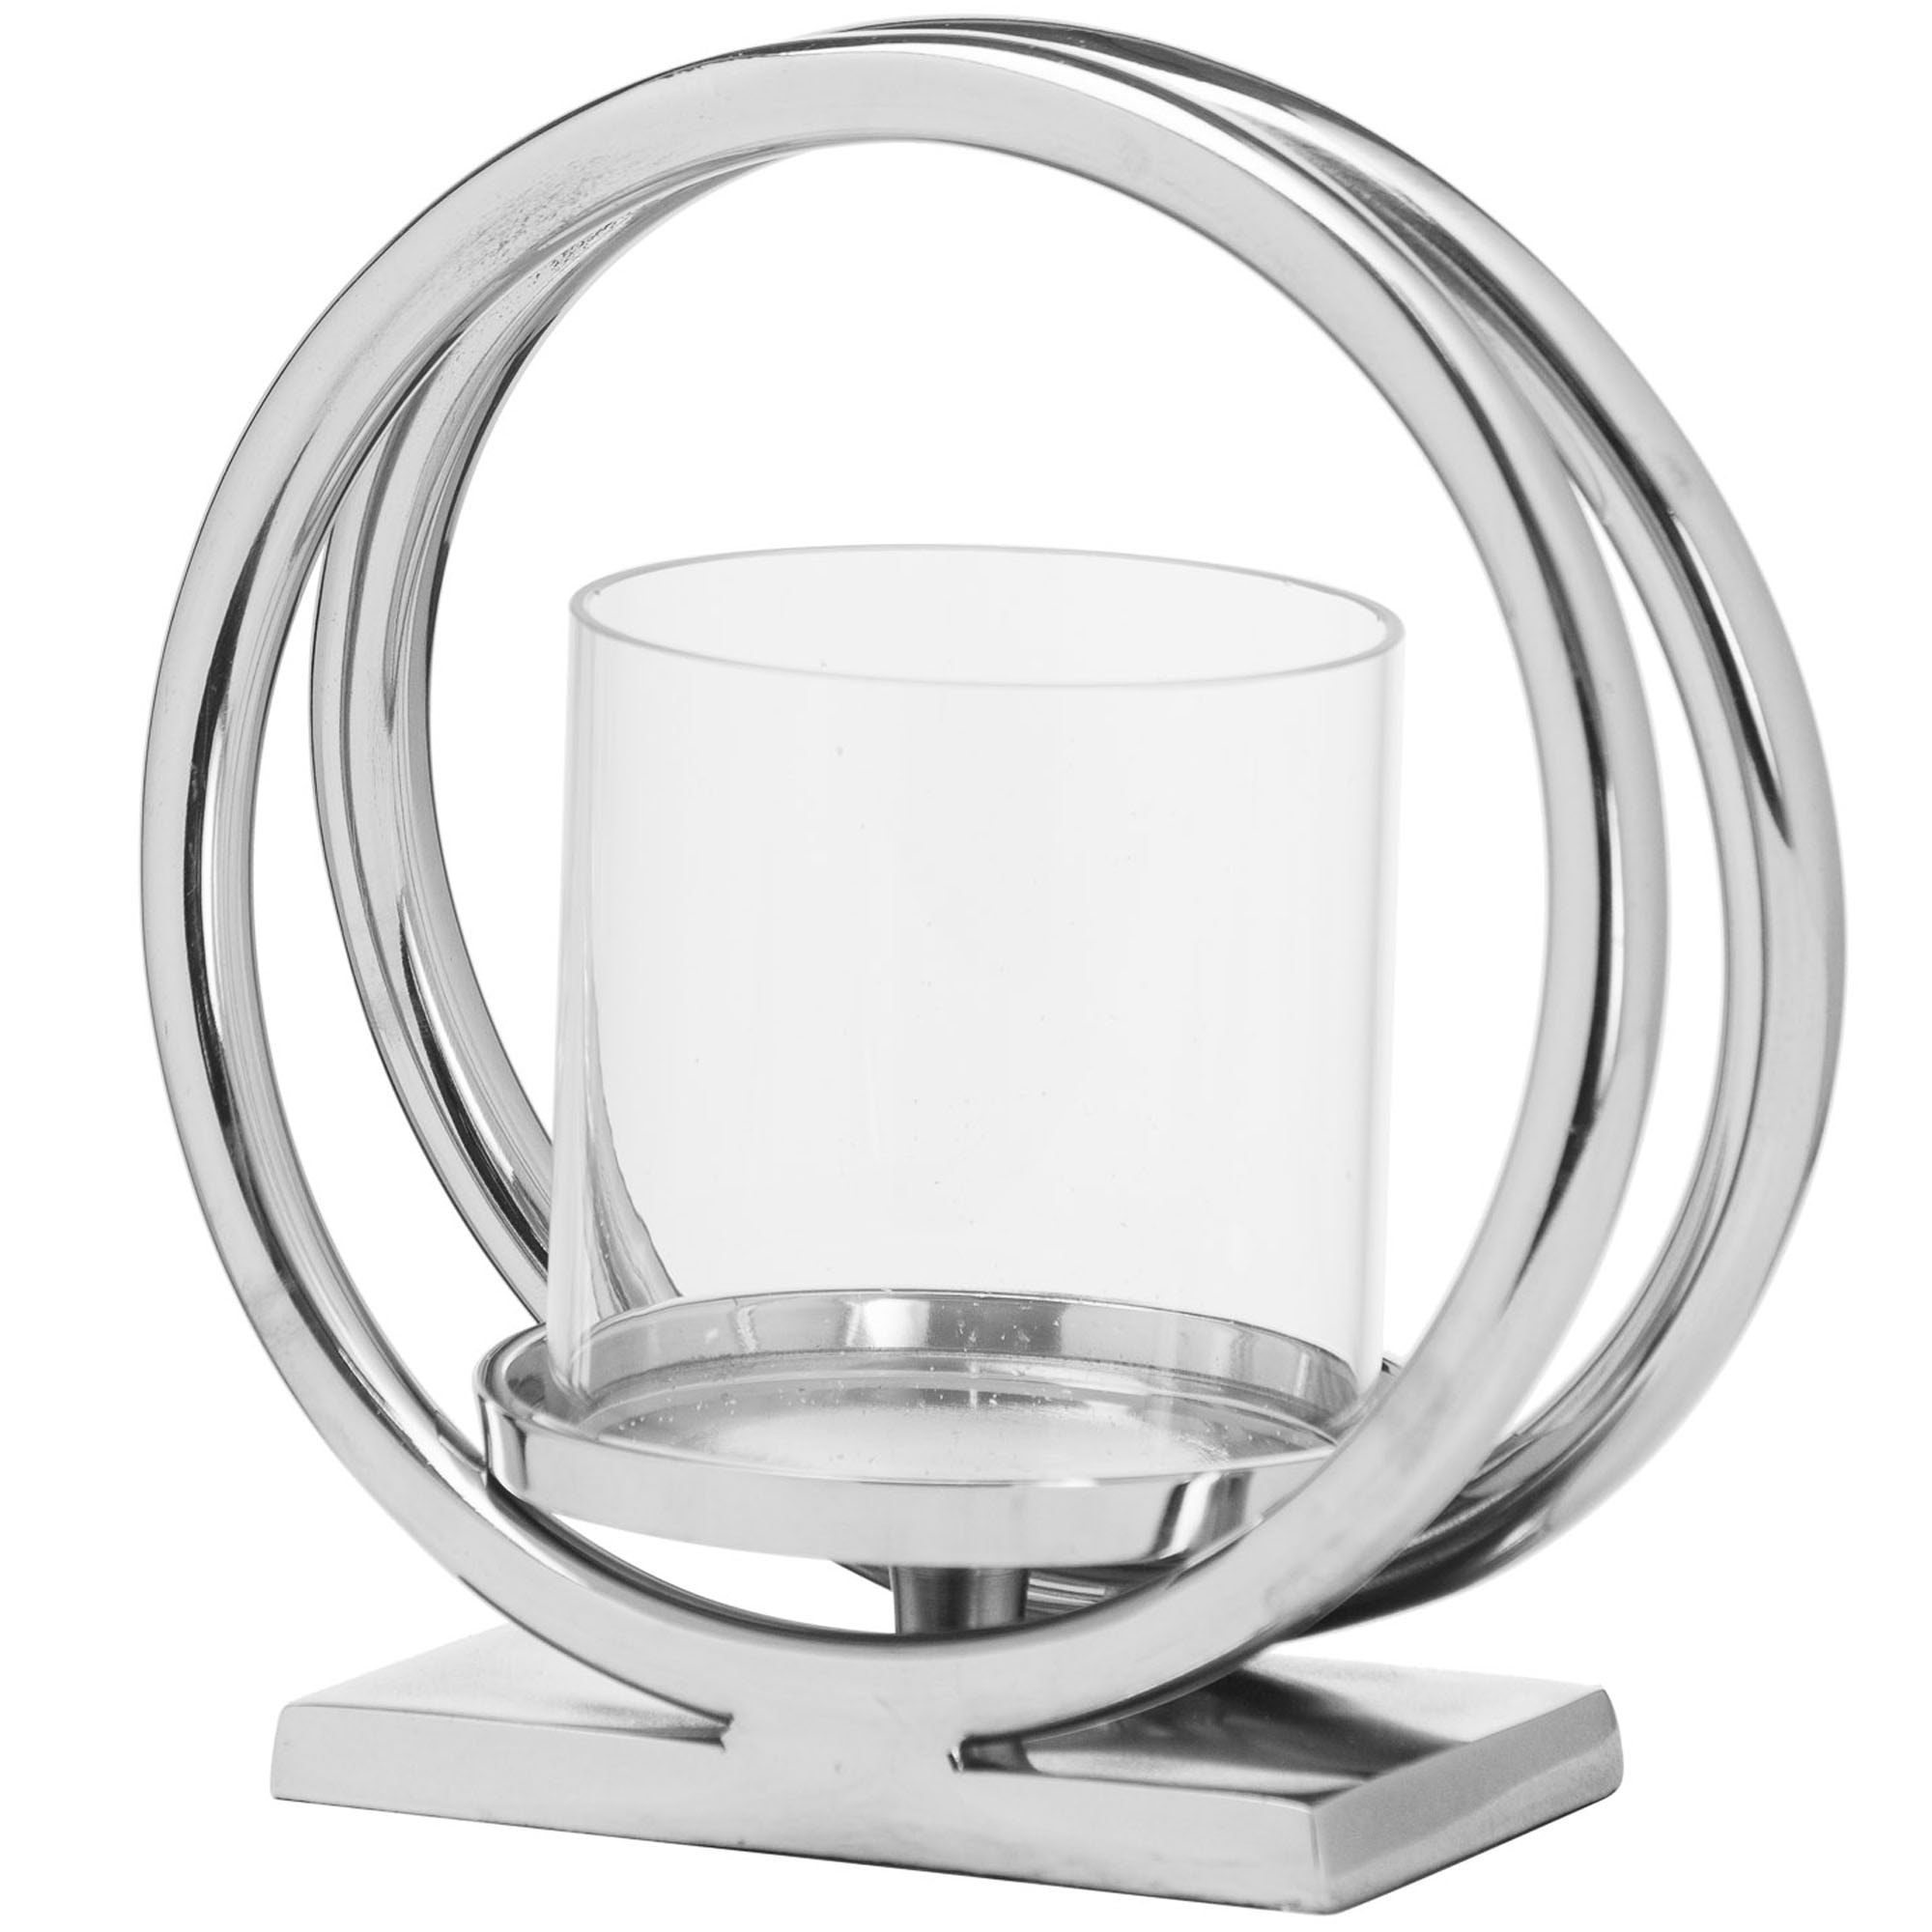 Ohlson Silver Candle Holder Home Accessories Candle Holders